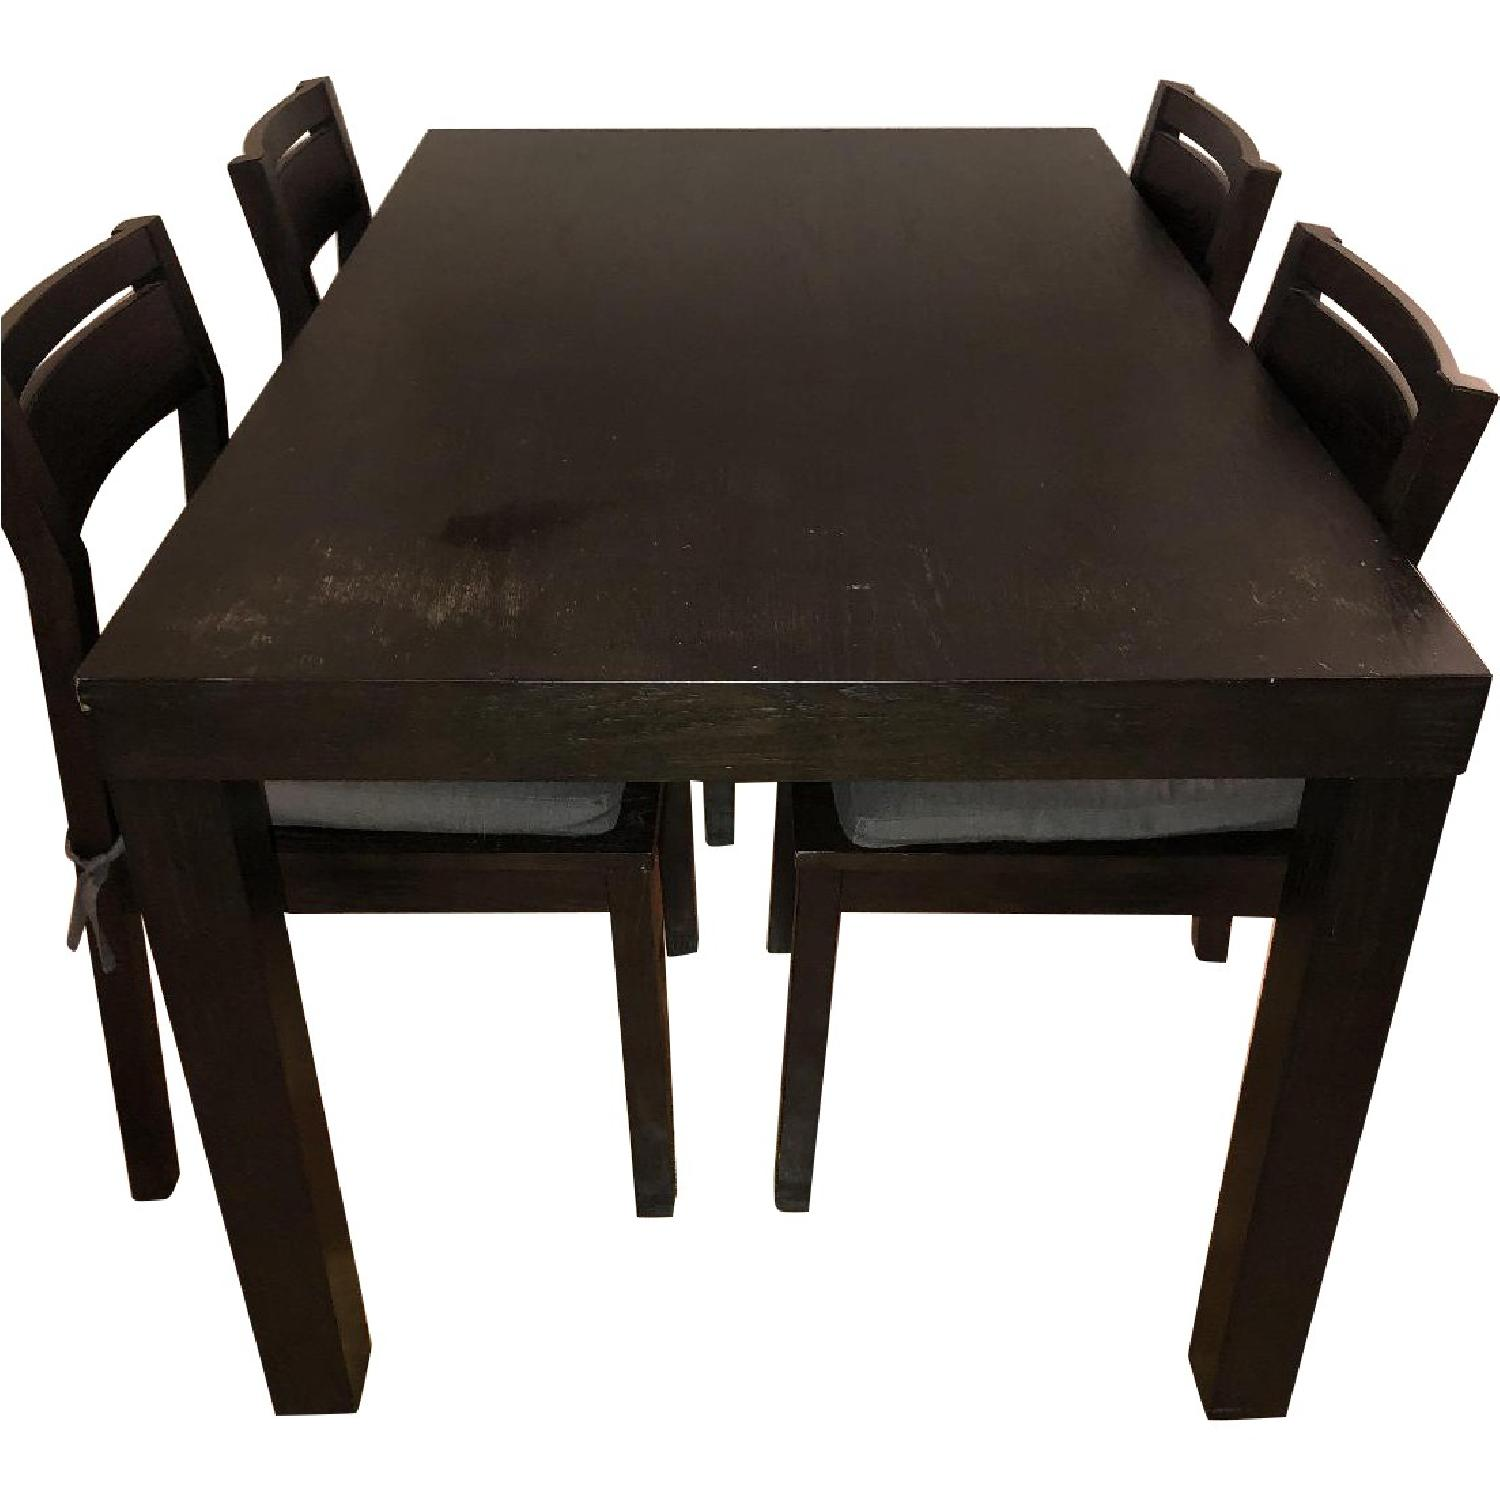 West Elm Parsons Dining Table w/4 Chairs